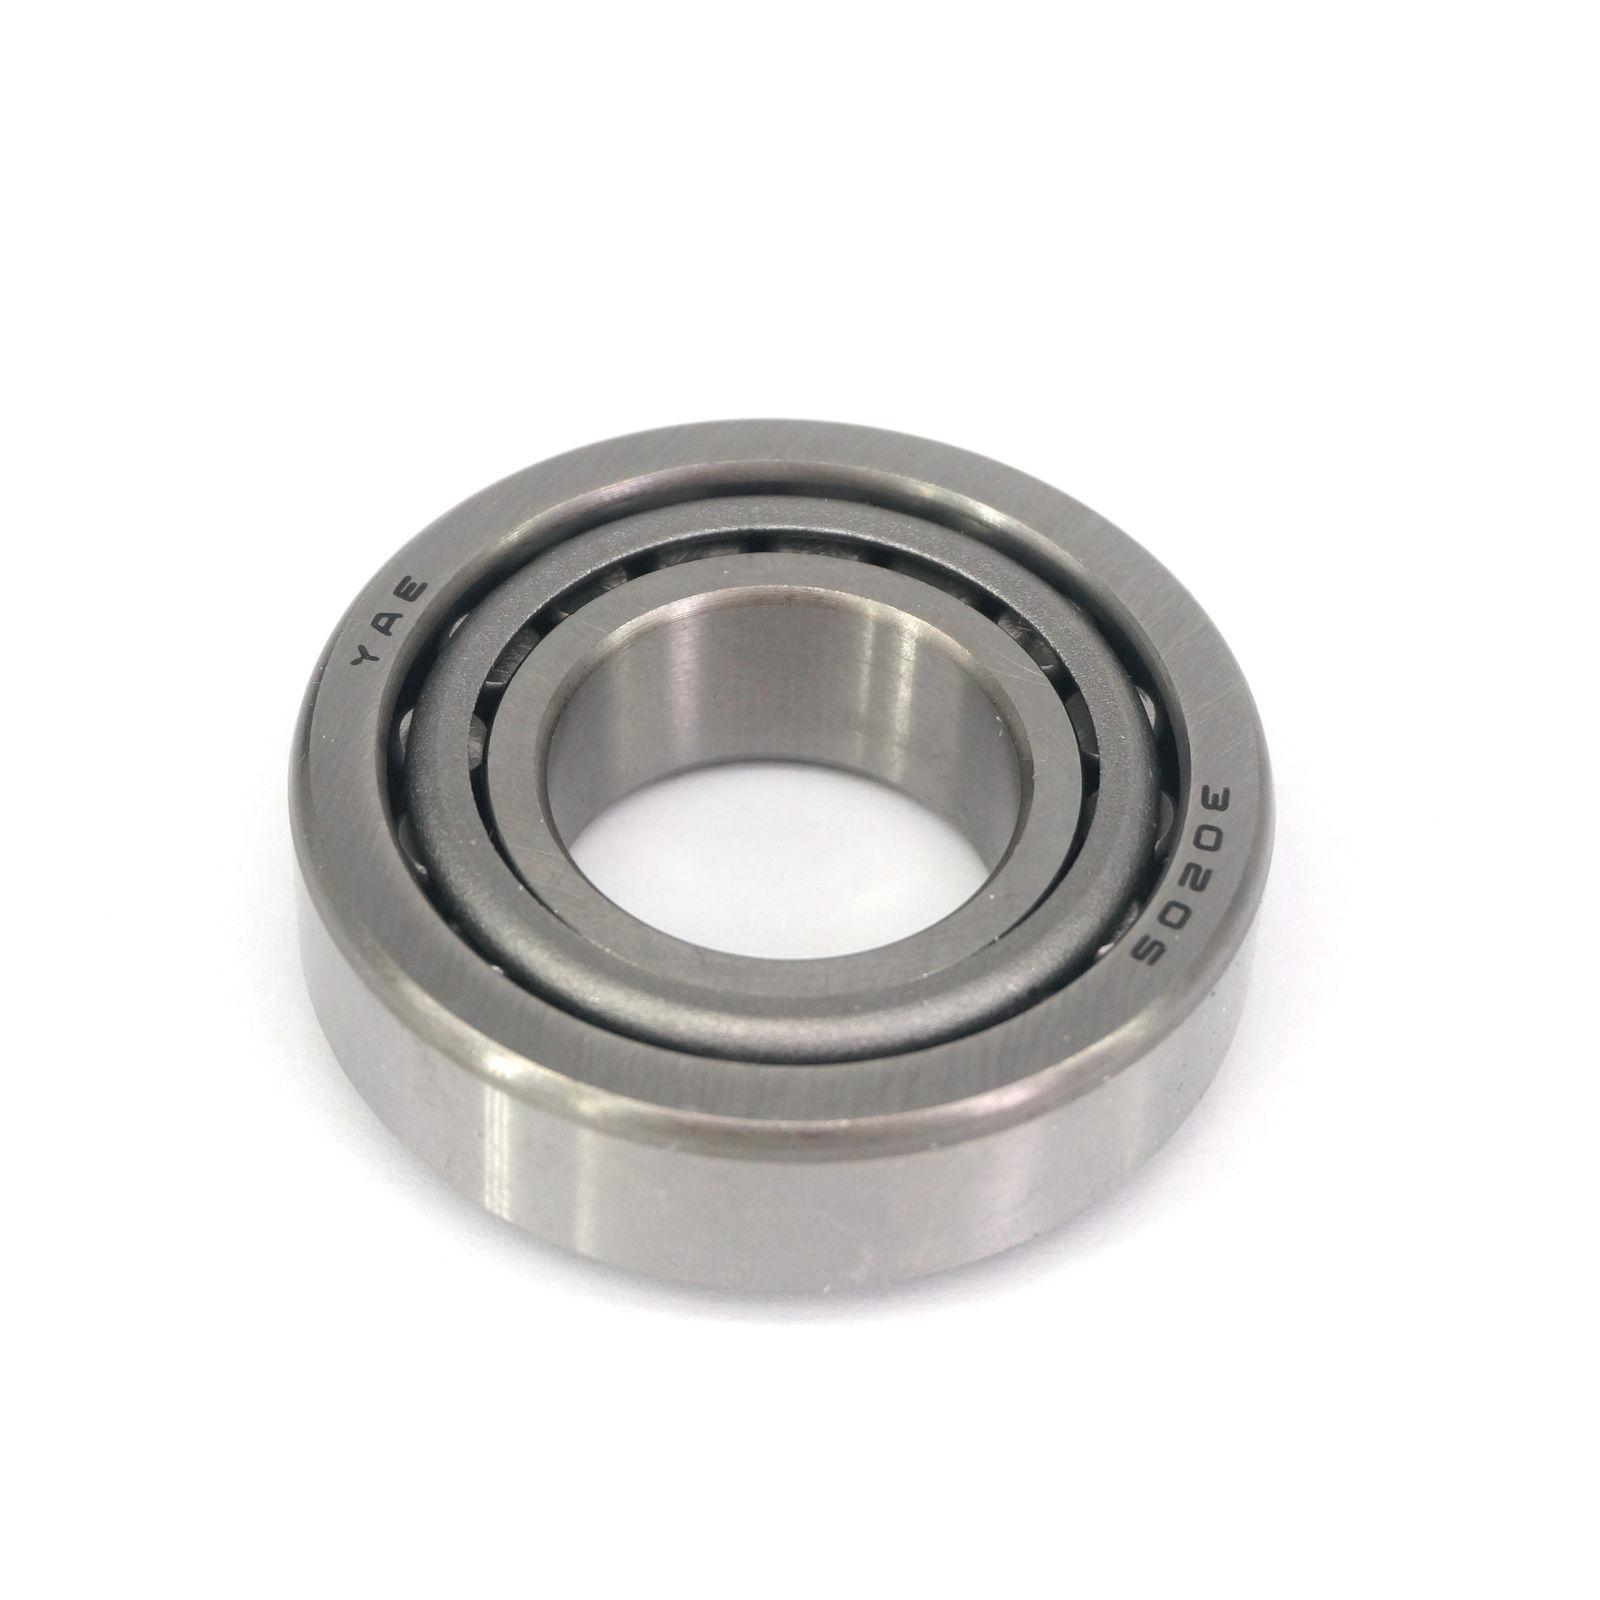 25x52x15mm ABEC1 30205 7205E Conical Tapered Eoller Bearings TRB Bearing Steel